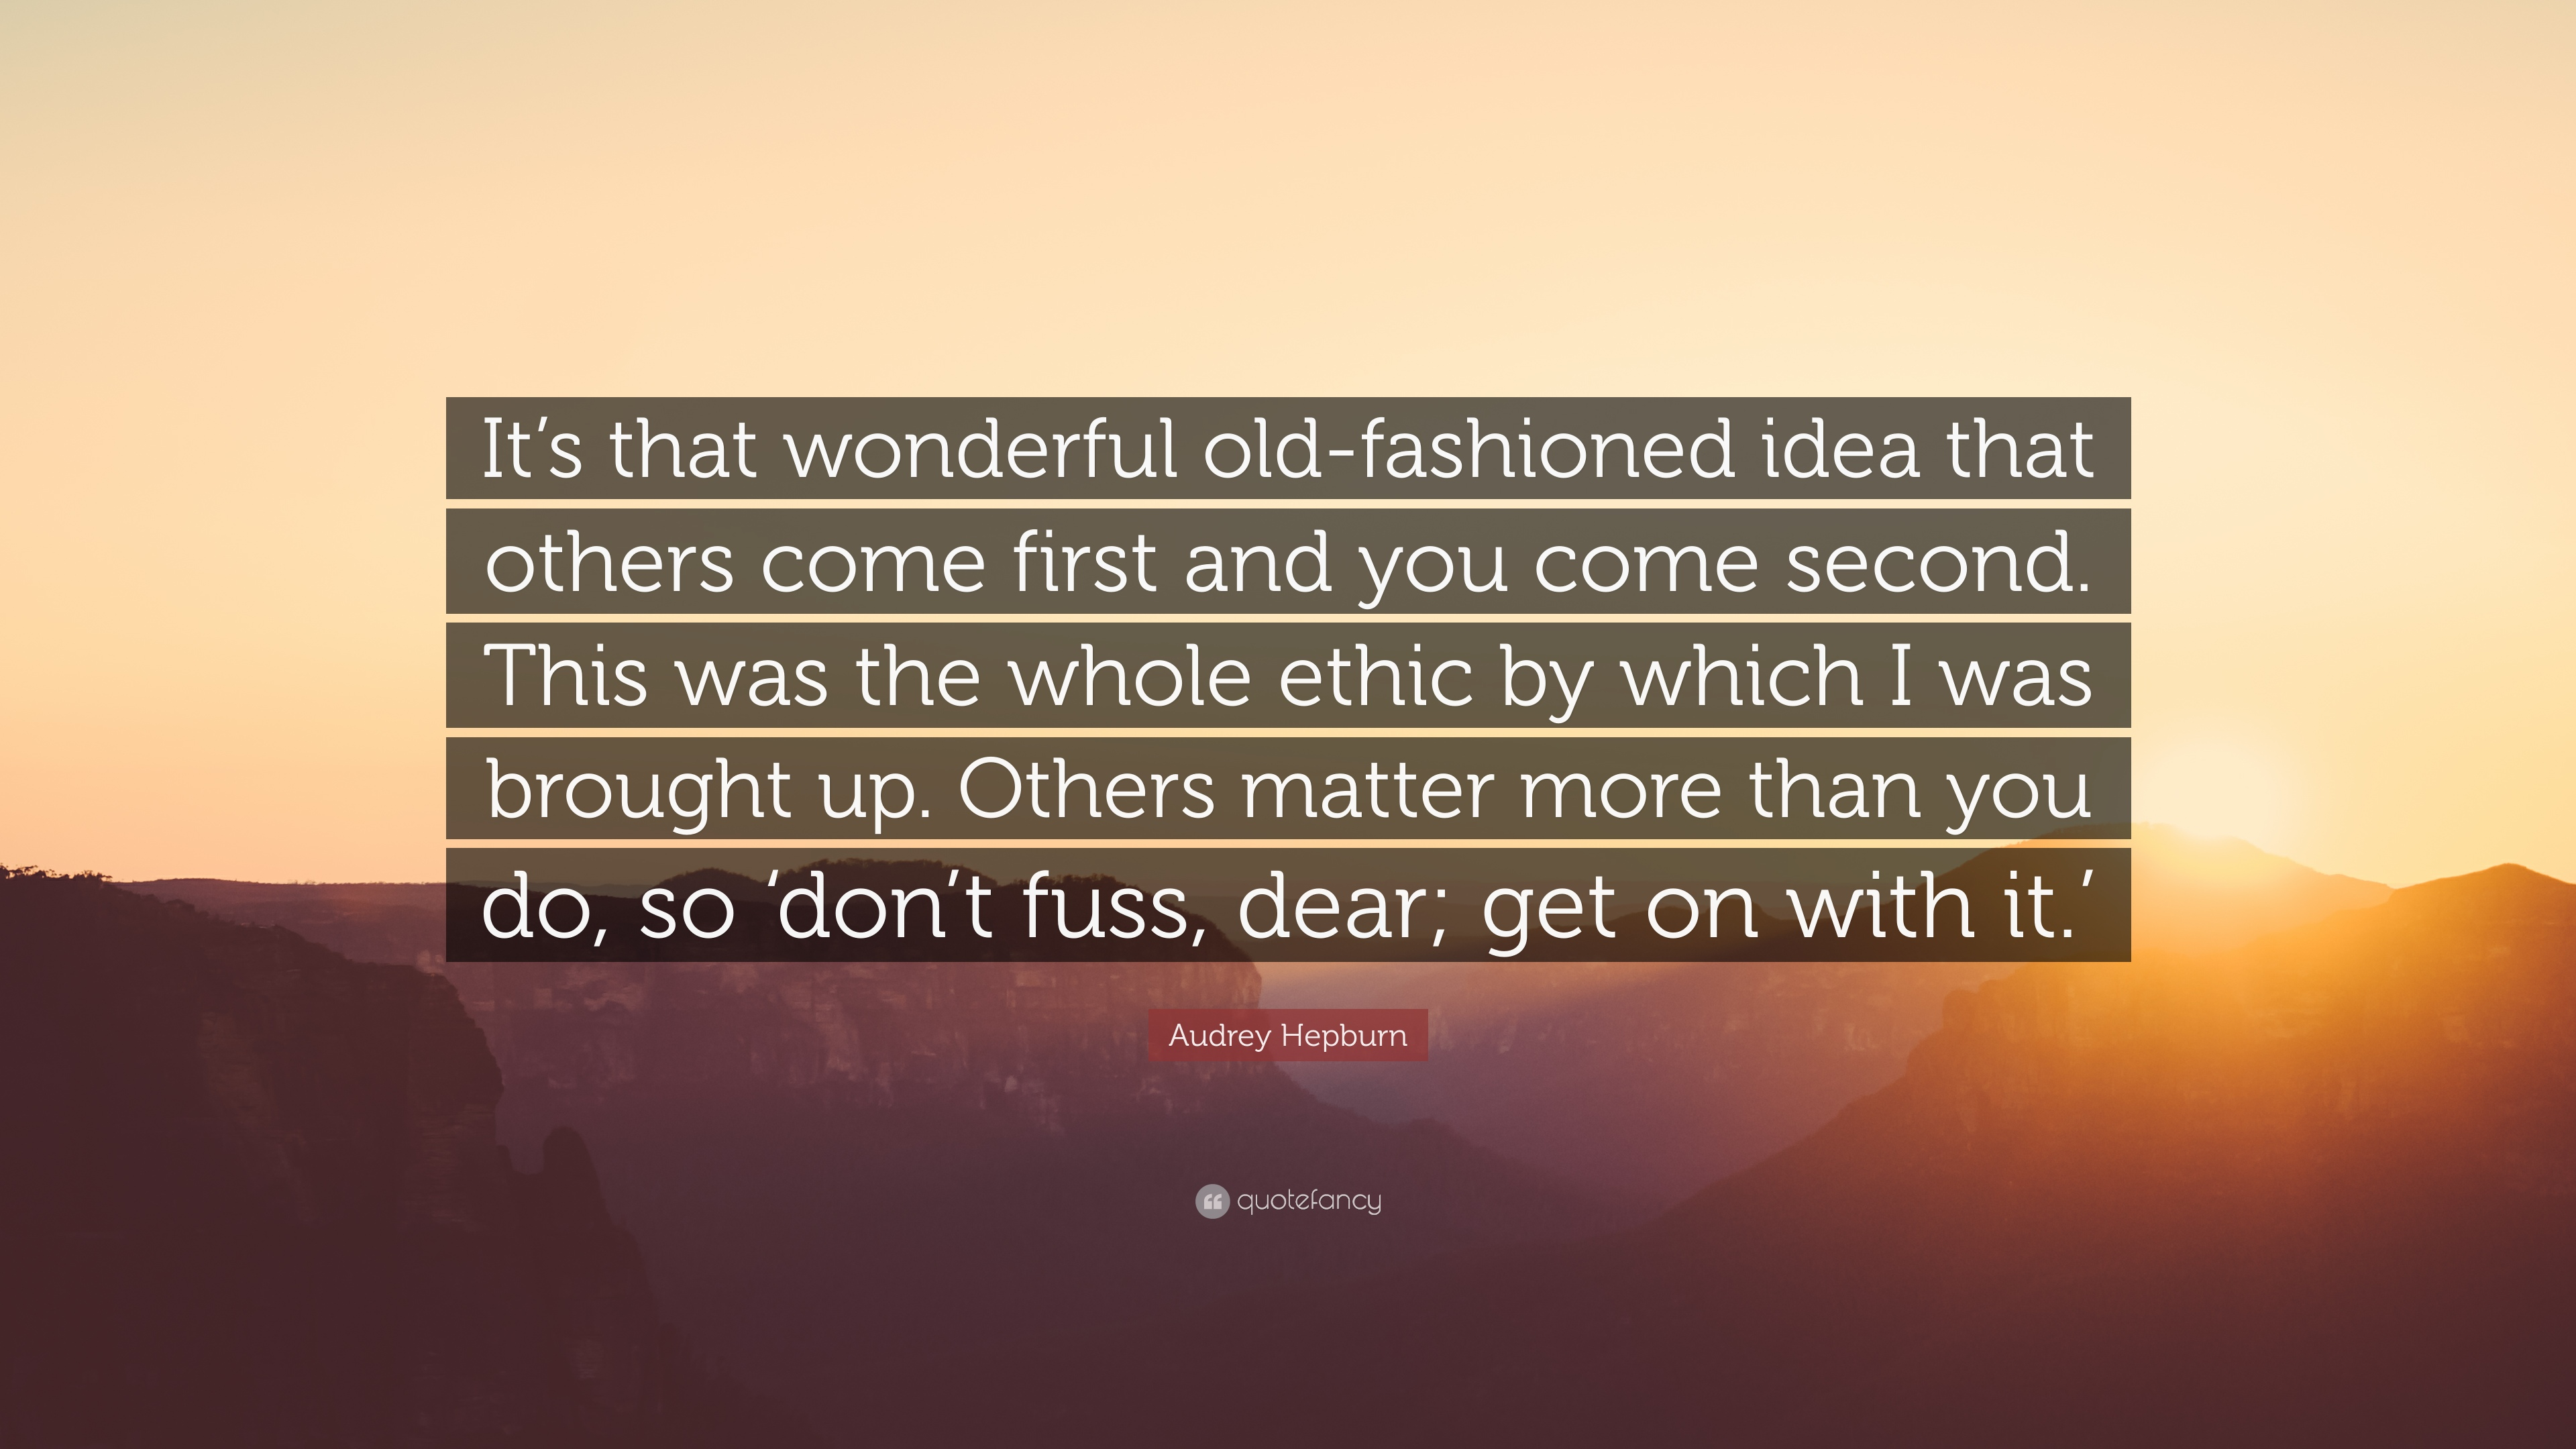 Audrey Hepburn Quote It S That Wonderful Old Fashioned Idea Others Come First